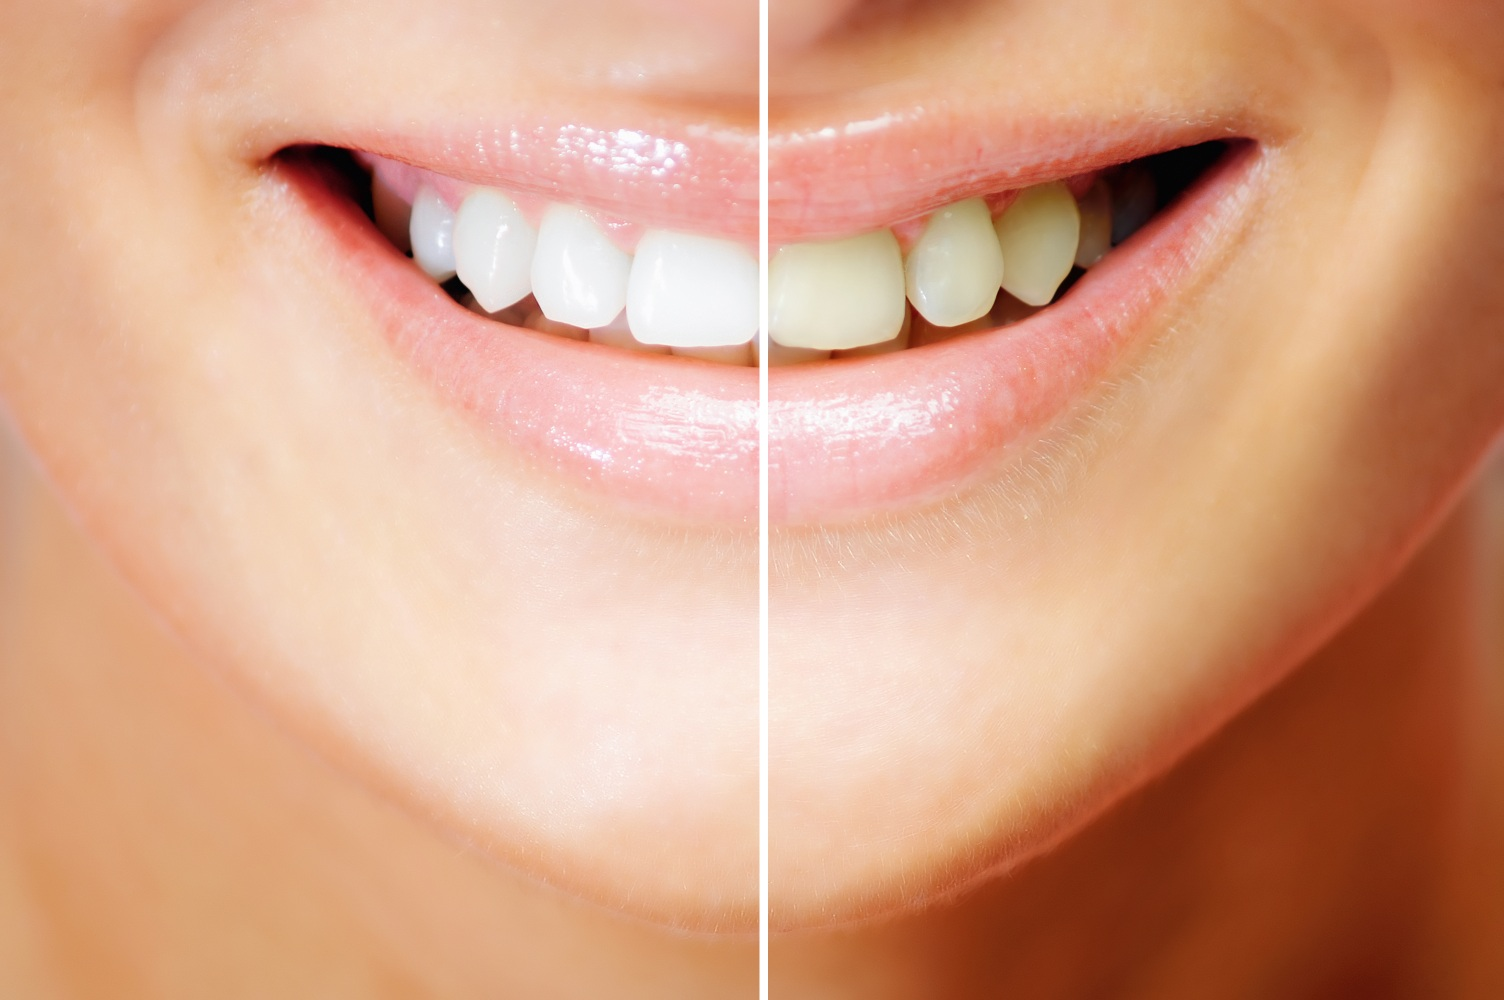 Convenient Teeth Whitening Options for Charlotte and Beyond